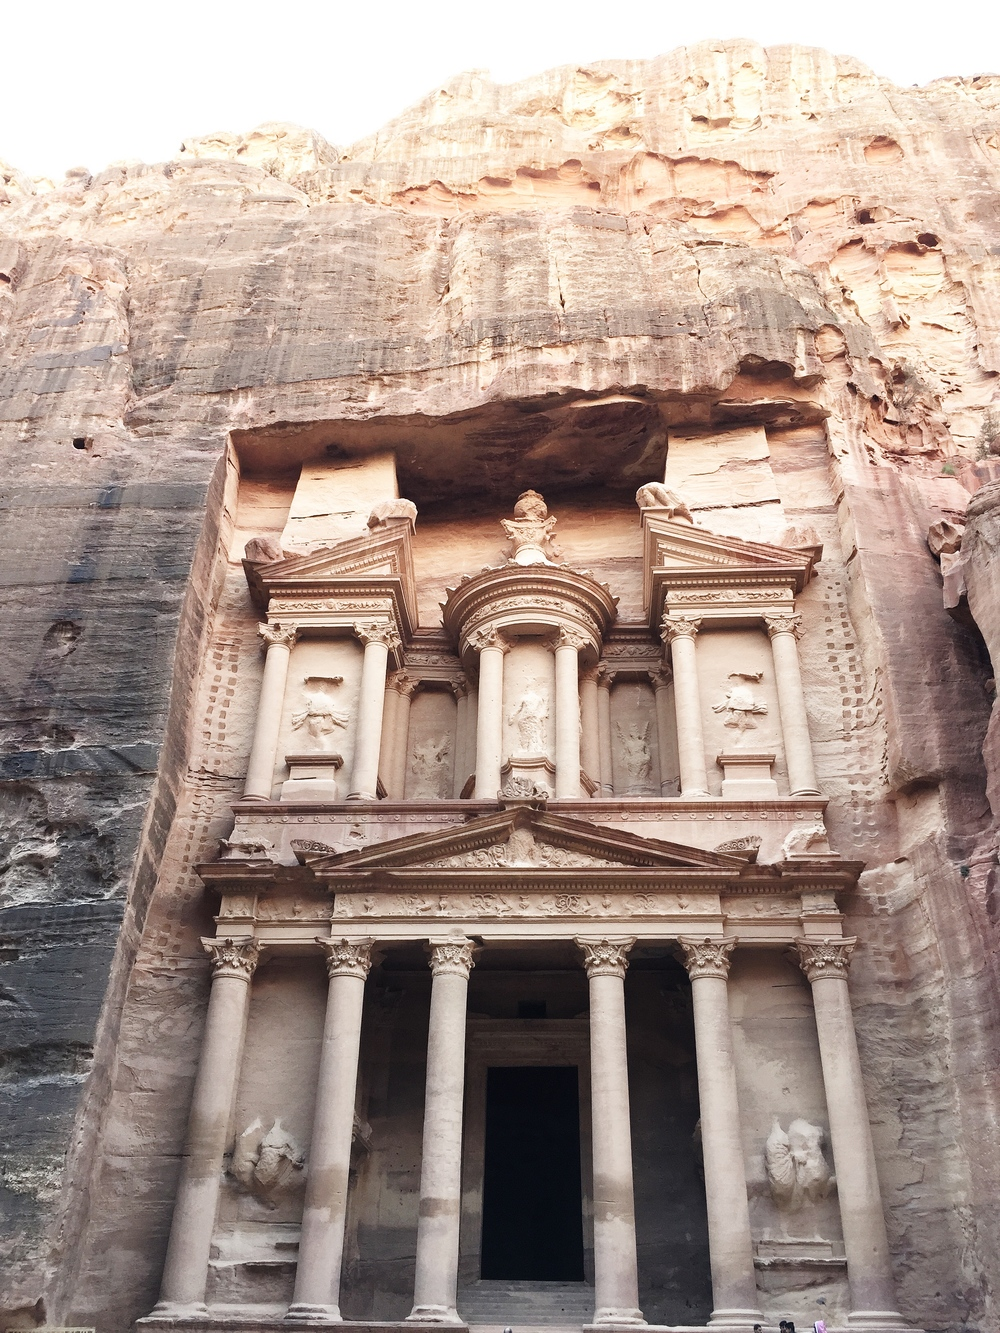 The Treasury: Entrance to the city of Petra